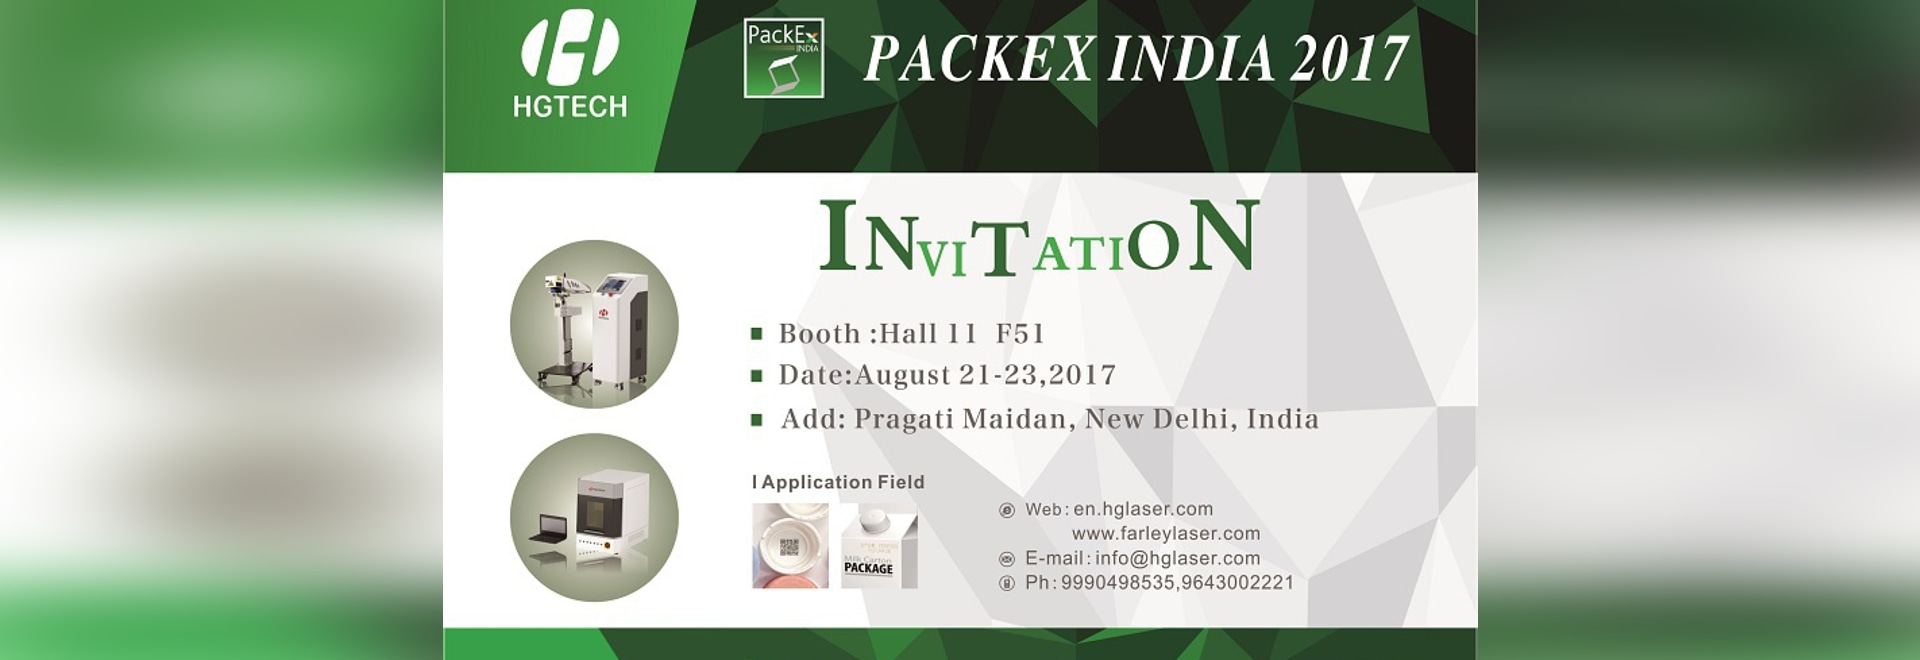 HGTECH Attending PackEx India 2017 this August